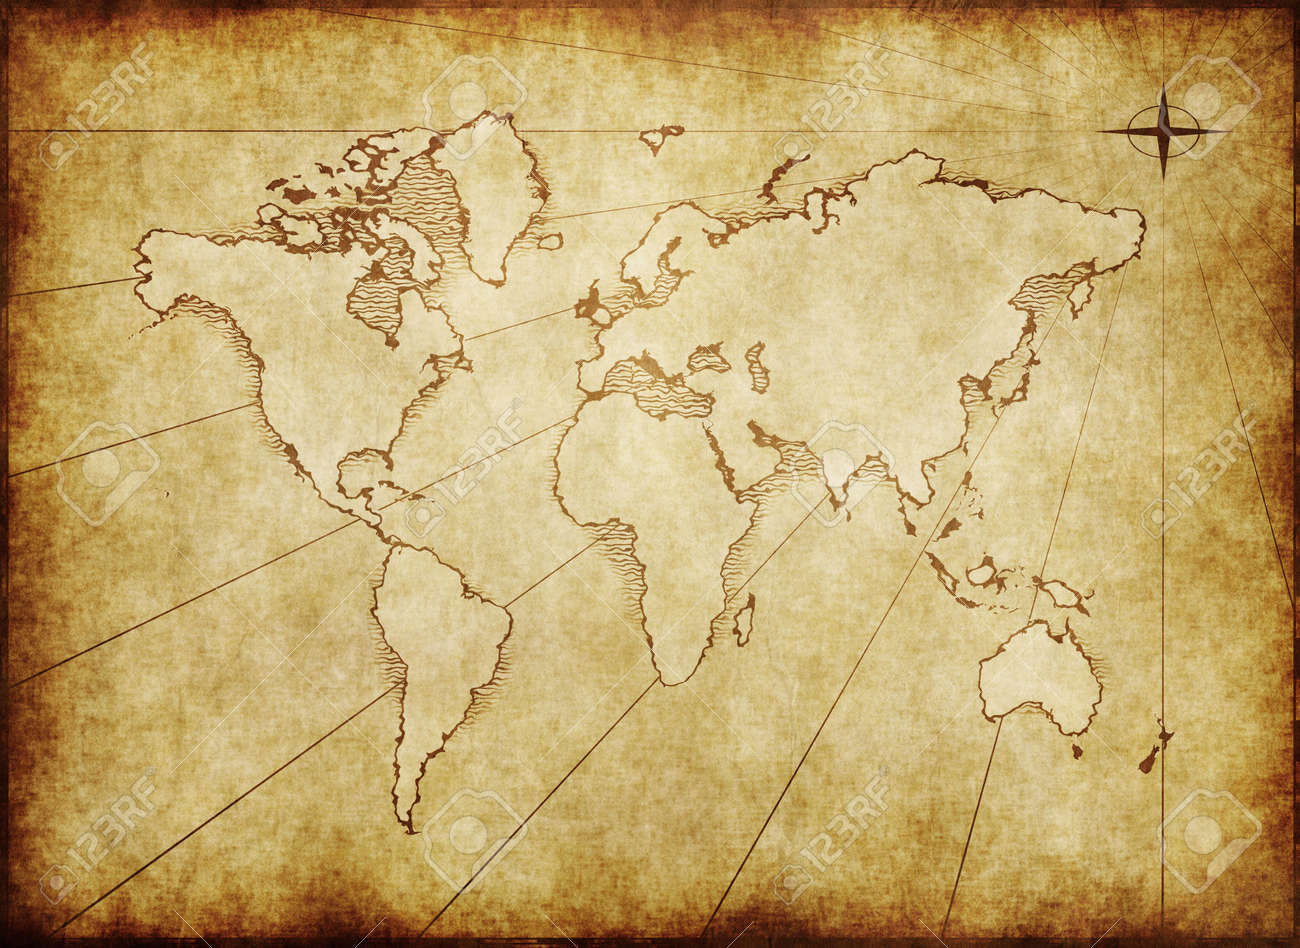 An Old World Map Drawn Onto Parchment Paper Stock Photo Picture